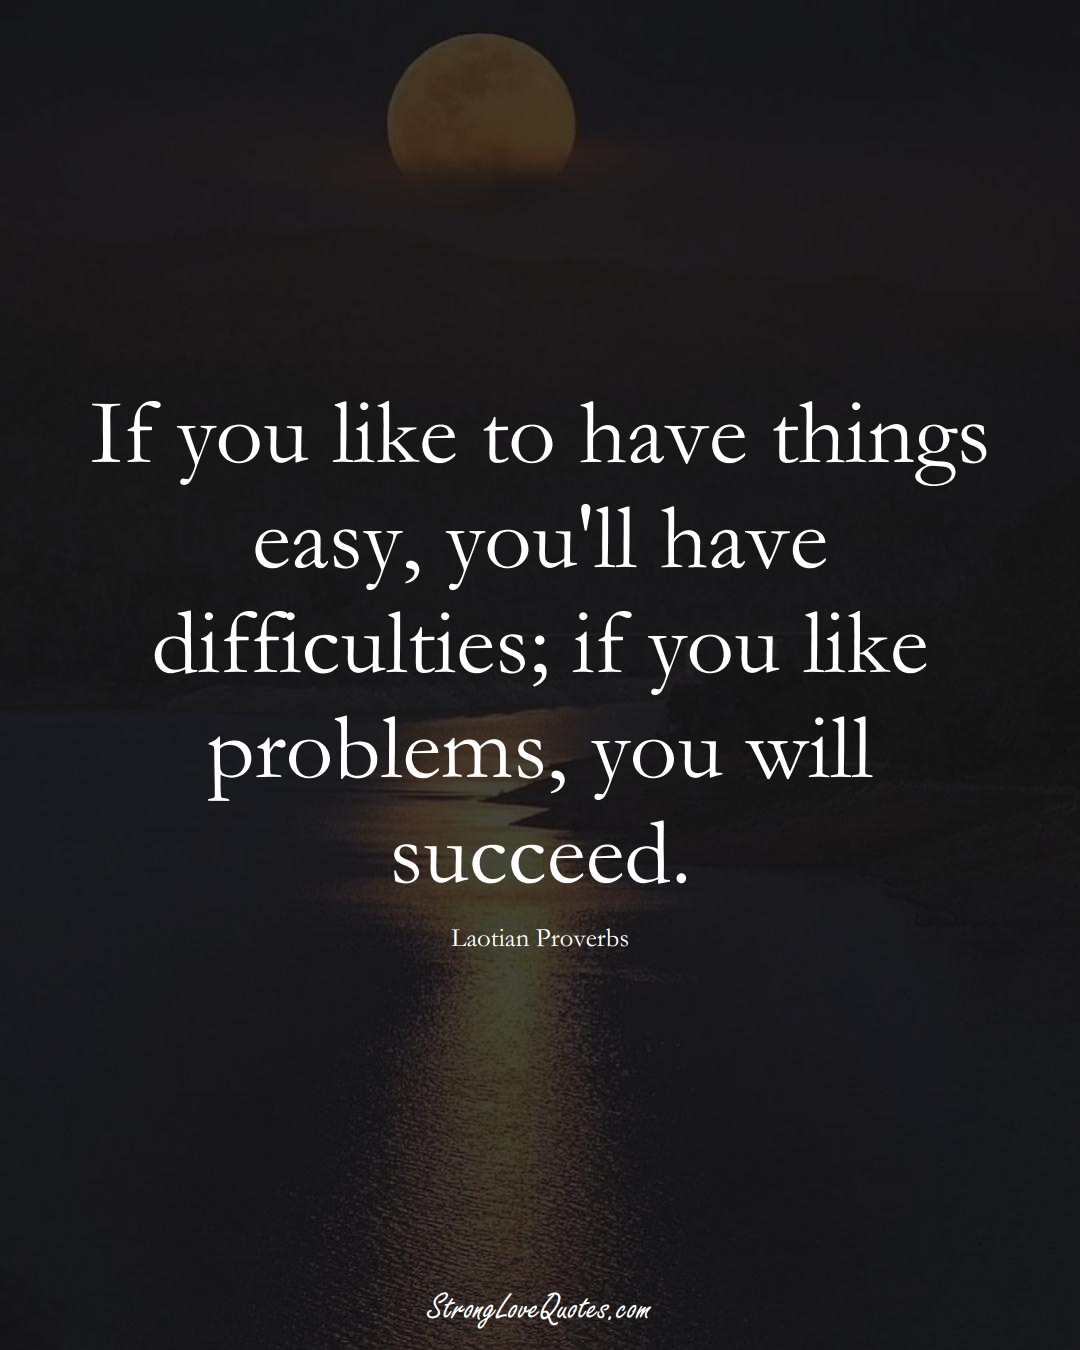 If you like to have things easy, you'll have difficulties; if you like problems, you will succeed. (Laotian Sayings);  #aVarietyofCulturesSayings